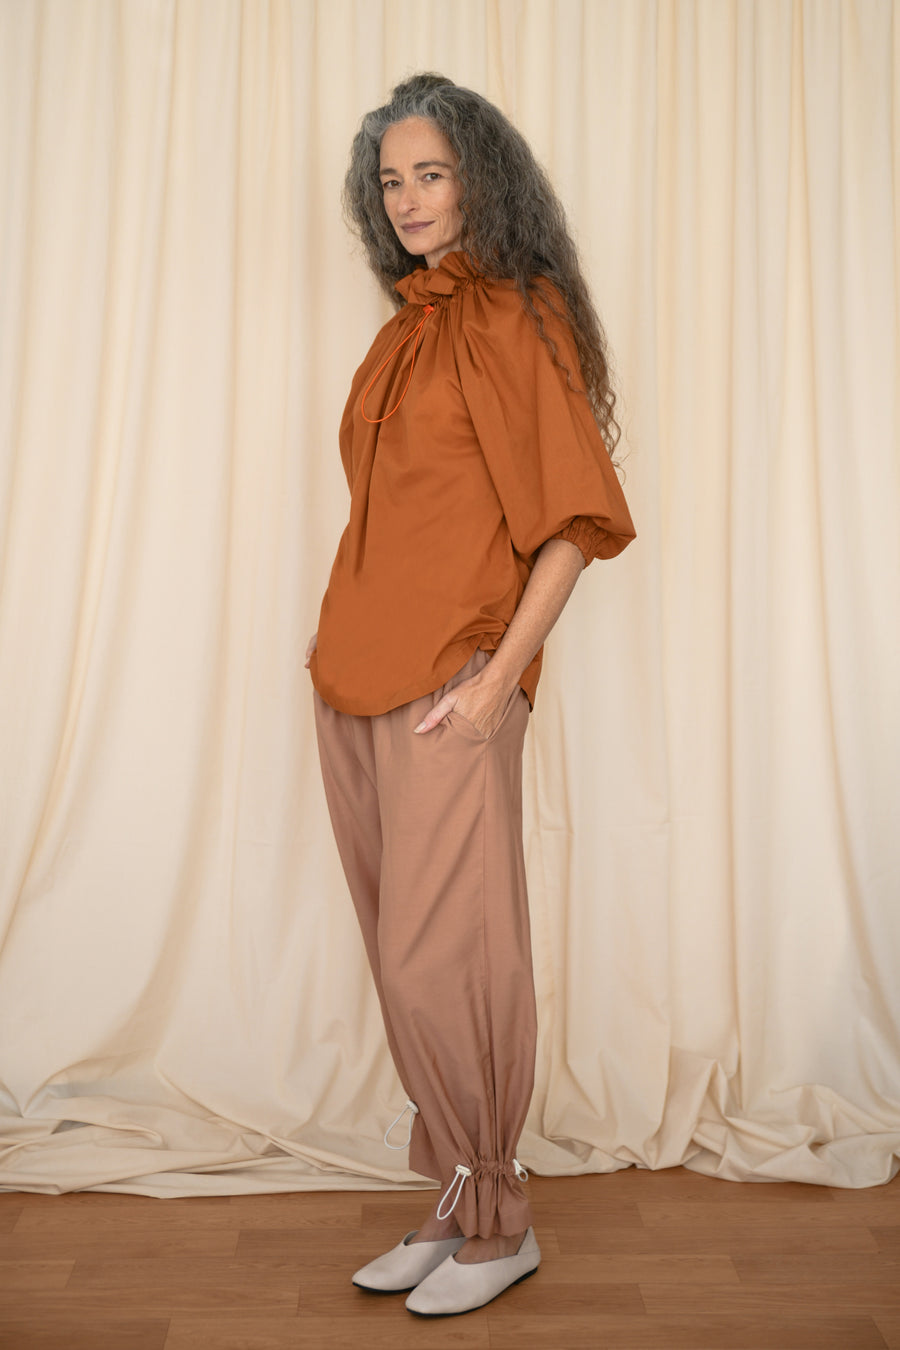 Peach Rubber Pants - OFIR IVGI